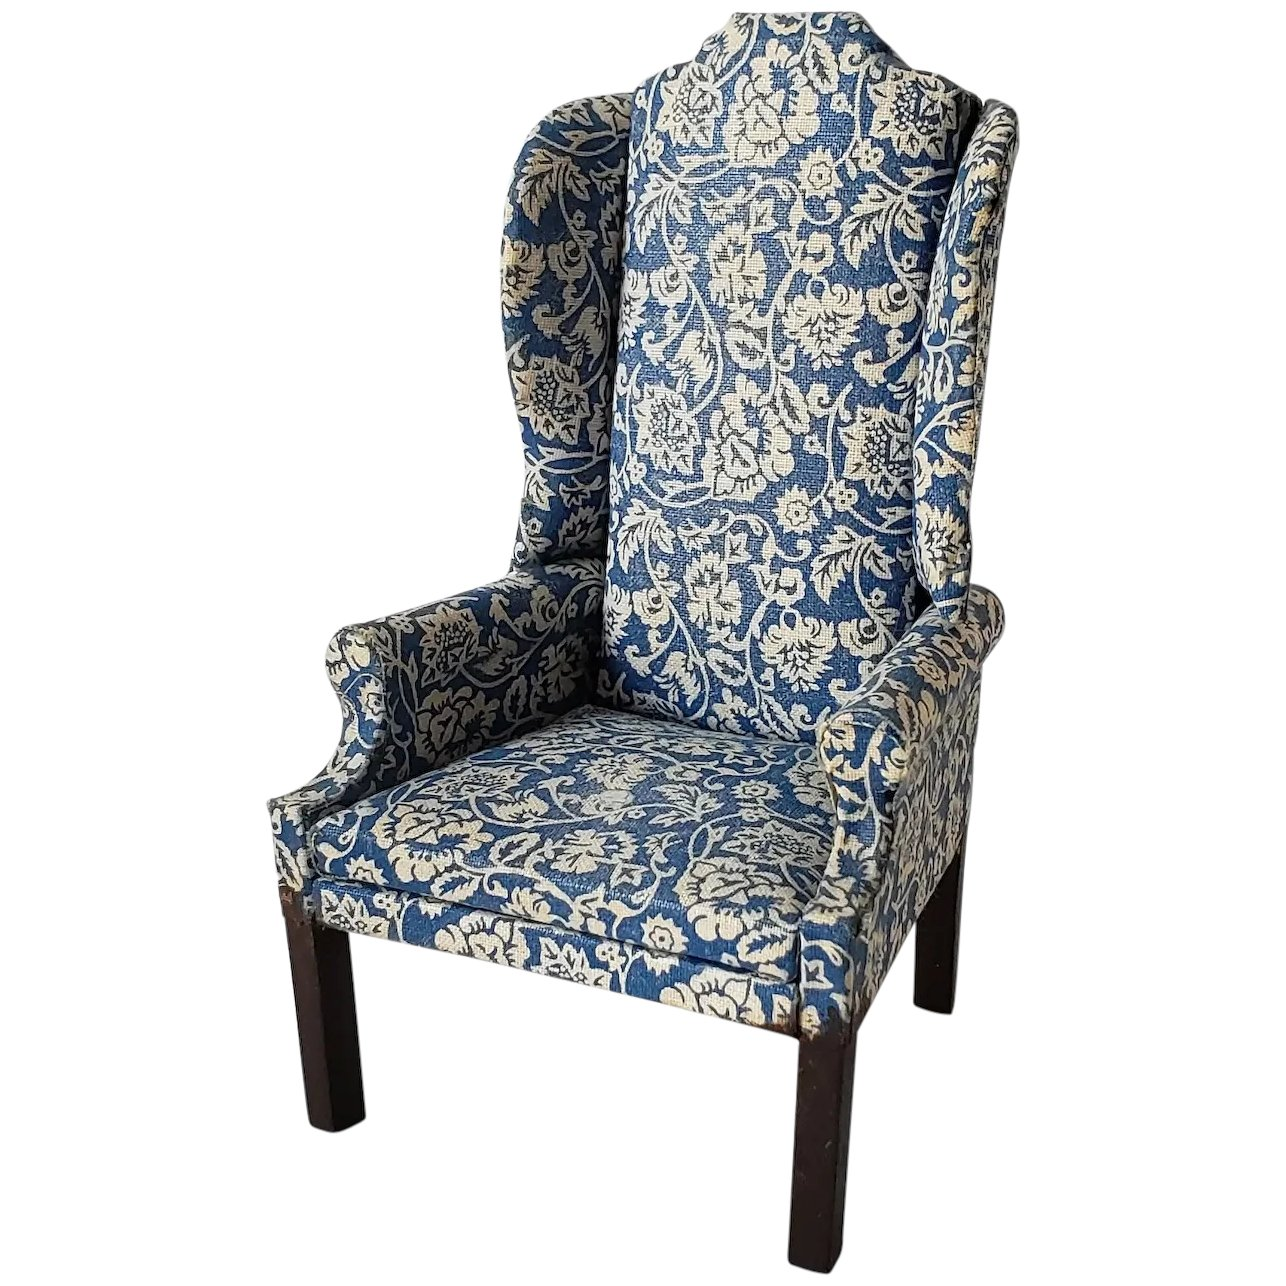 Groovy Vintage Artisan Made Wing Chair Blue And White Uwap Interior Chair Design Uwaporg